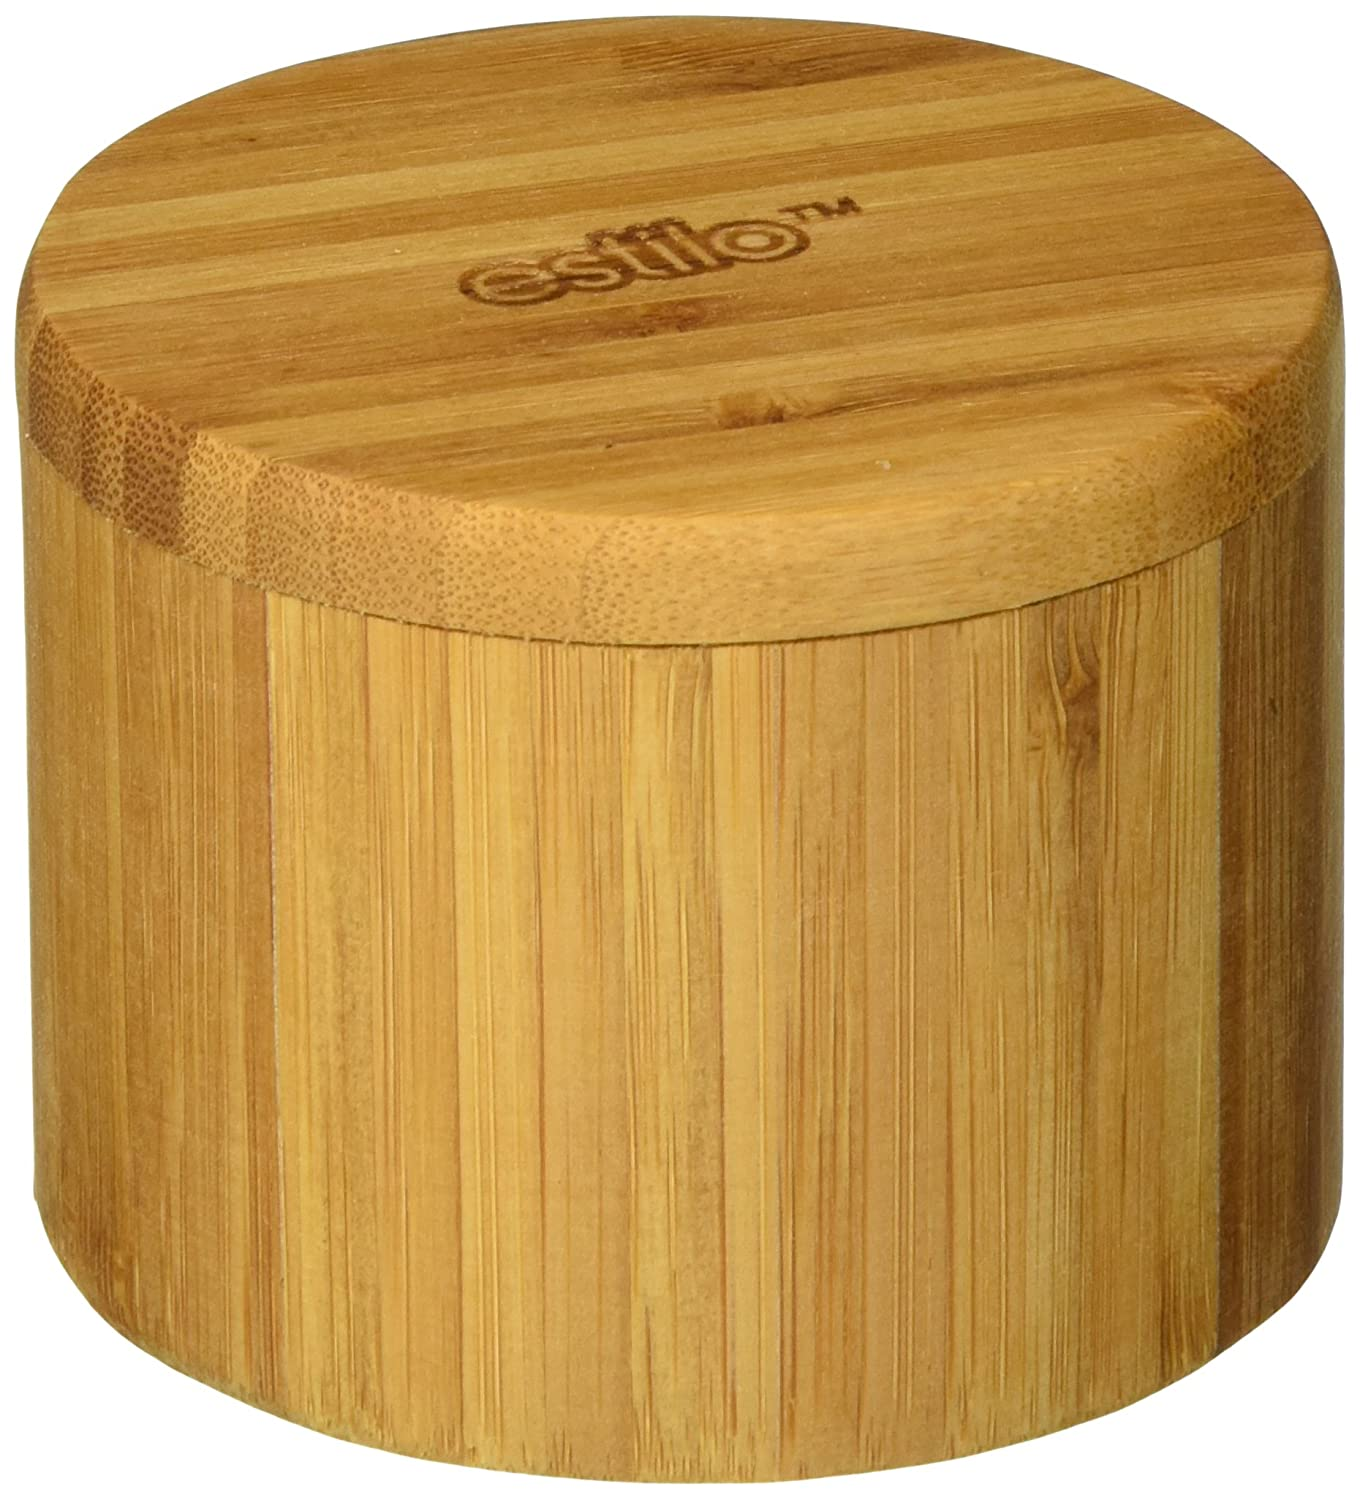 Estilo 100% Natural Bamboo Single Round Salt Or Spice Box With Lid